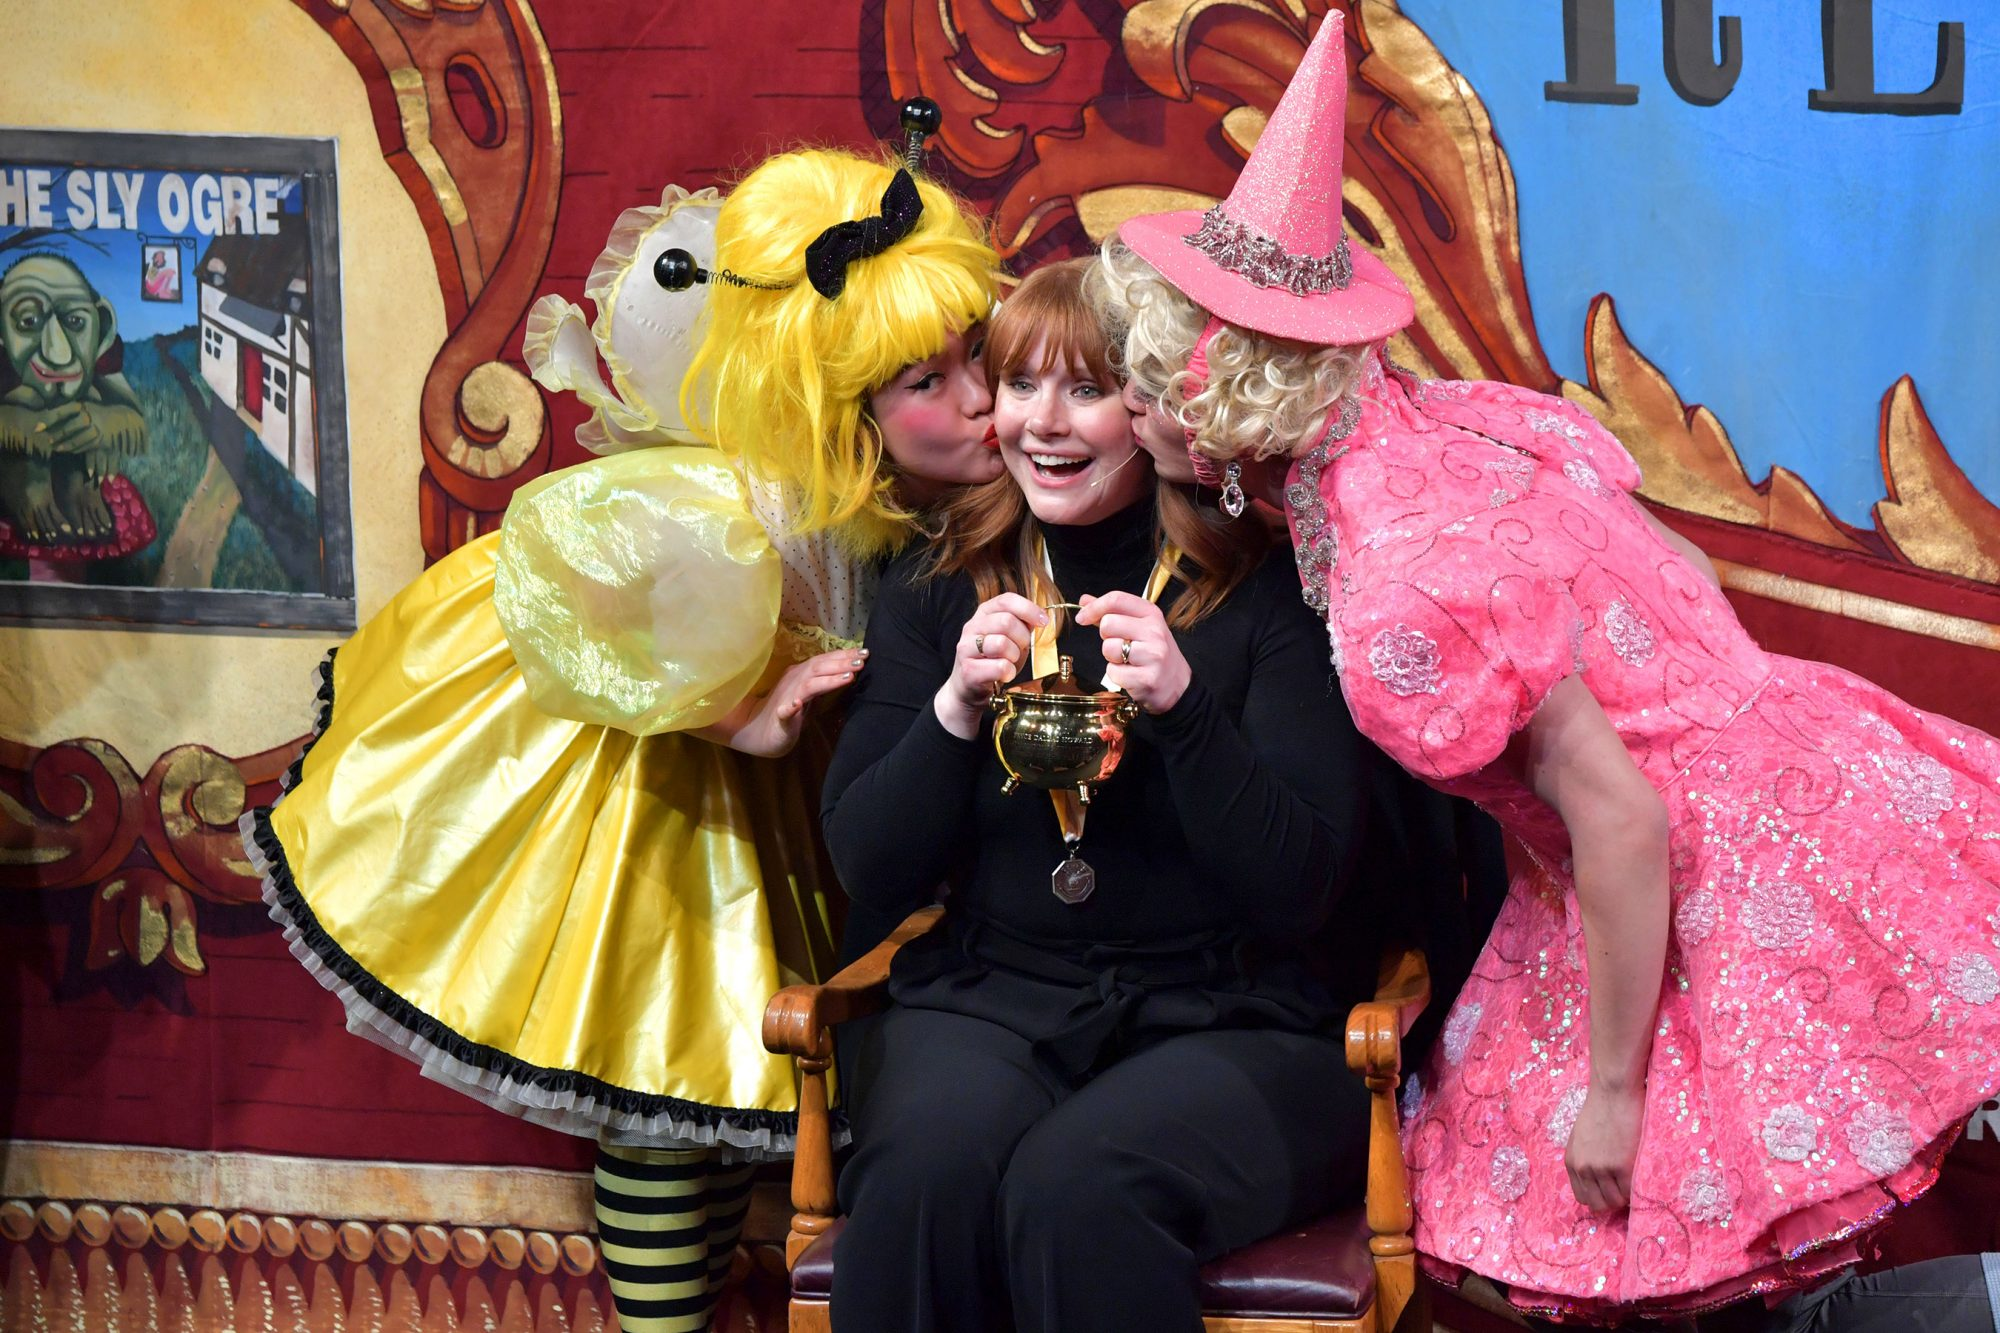 Hasty Pudding Theatricals Honors Bryce Dallas Howard As 2019 Woman of The Year